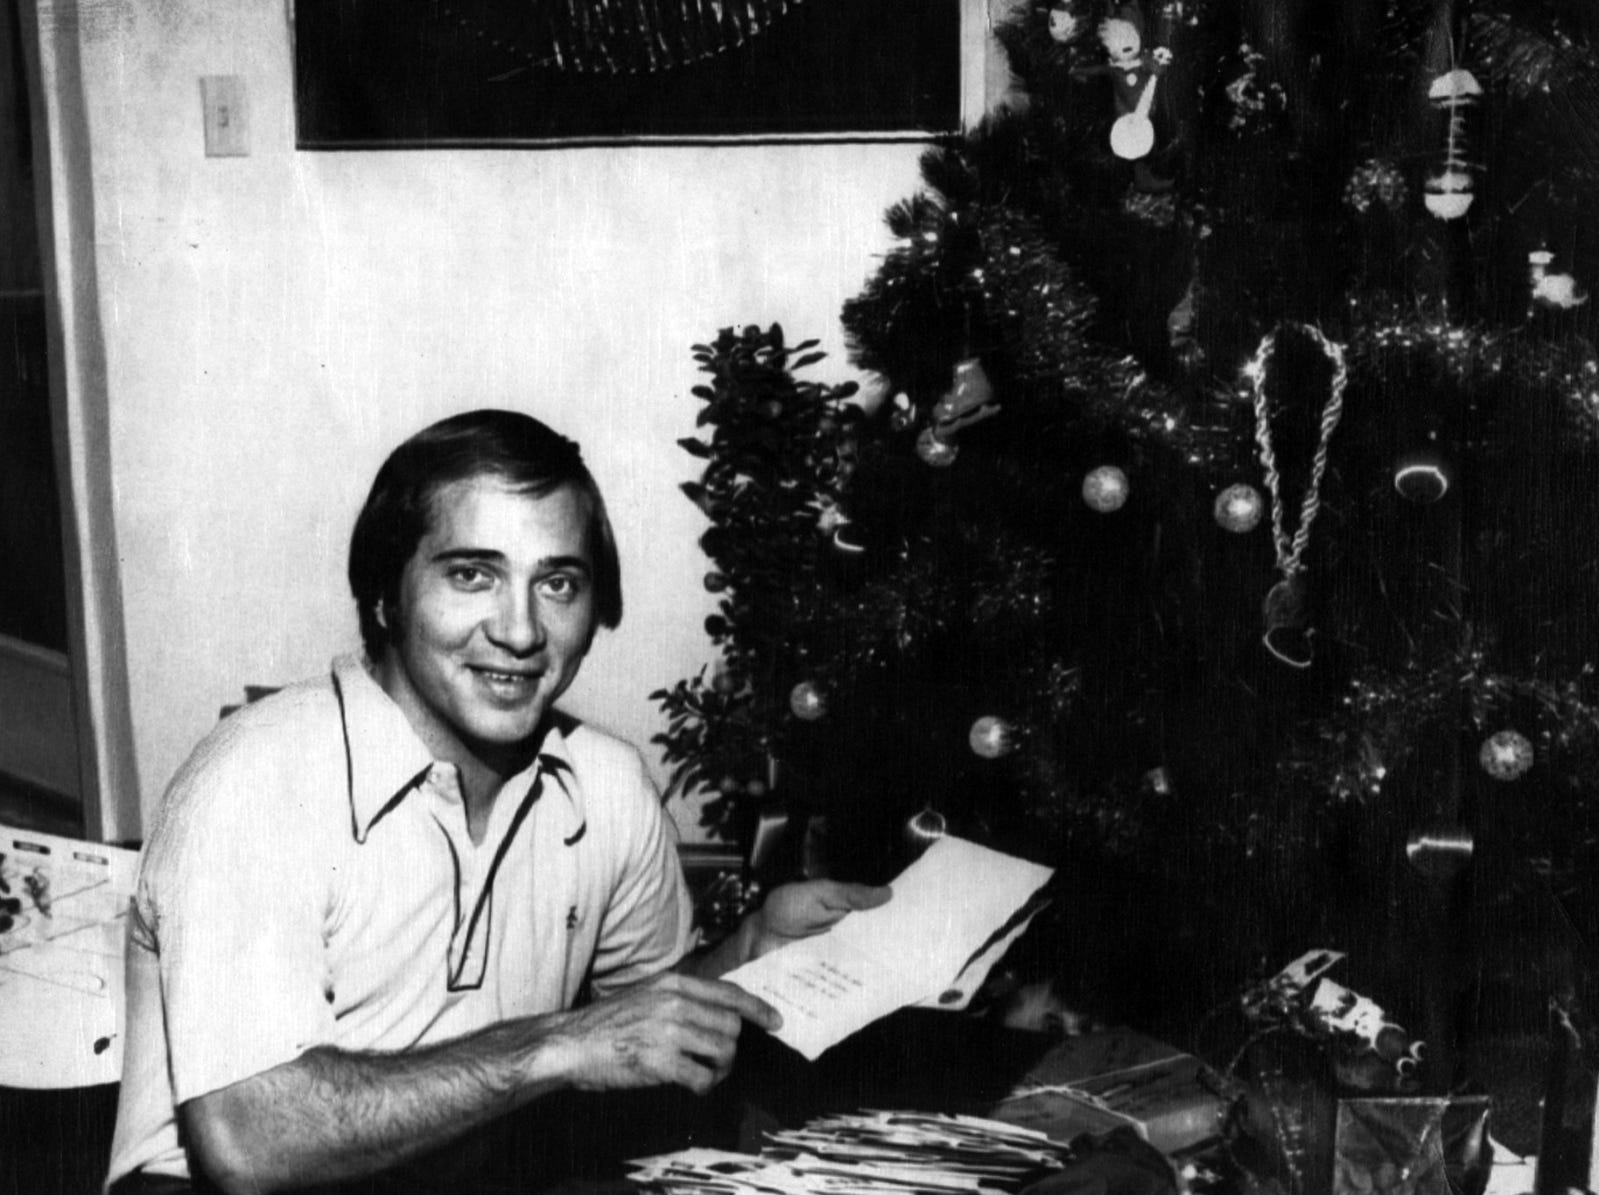 """DECEMBER 23, 1972: Cincinnati Res catcher John Bench, recovering from surgery about two weeks ago, points to a Christmas card he received from President Nixon. The card, which contained no personally-written message, was one of thousands of Christmas cards and """"get well"""" wishes sent to Bench since he had a benign spot removed from one lung. Doctors say he will play as usual this spring. AP Photo scanned August 8, 2013 FROM A SUNDAY DECEMBER 24, 1972 ARTICLE BY BILL WINTER, ASSOCIATED PRESS SPORTS WRITER: 'Dear Johnny Bench...': One insistent young miss who wrote to Johnny Bench following the Cincinnati slugger's recent surgery spoke for most of the 15,000 who sent letters. """"I love you Johnny Bench,"""" the little girl wrote. """"You are a good baseball player. You are a good man. I love you. Do you love me? Yes or no? Write back!"""" Recovering from surgery during which a benign lesion was removed from his right lung, Bench still is struggling through a mountain of such mail. Ted Bench, the young catcher's father, is helping, as is Mrs. Bench. """"It's unbelievable,"""" the elder Bench said as he sifted through seven boxes of unopened mail. """"They're from everywhere, from Hawaii, Puerto Rico, from all over. It is something else."""" The younger Bench, most valuable player in the National League two of the last three seasons, mused over the outpouring of good will."""